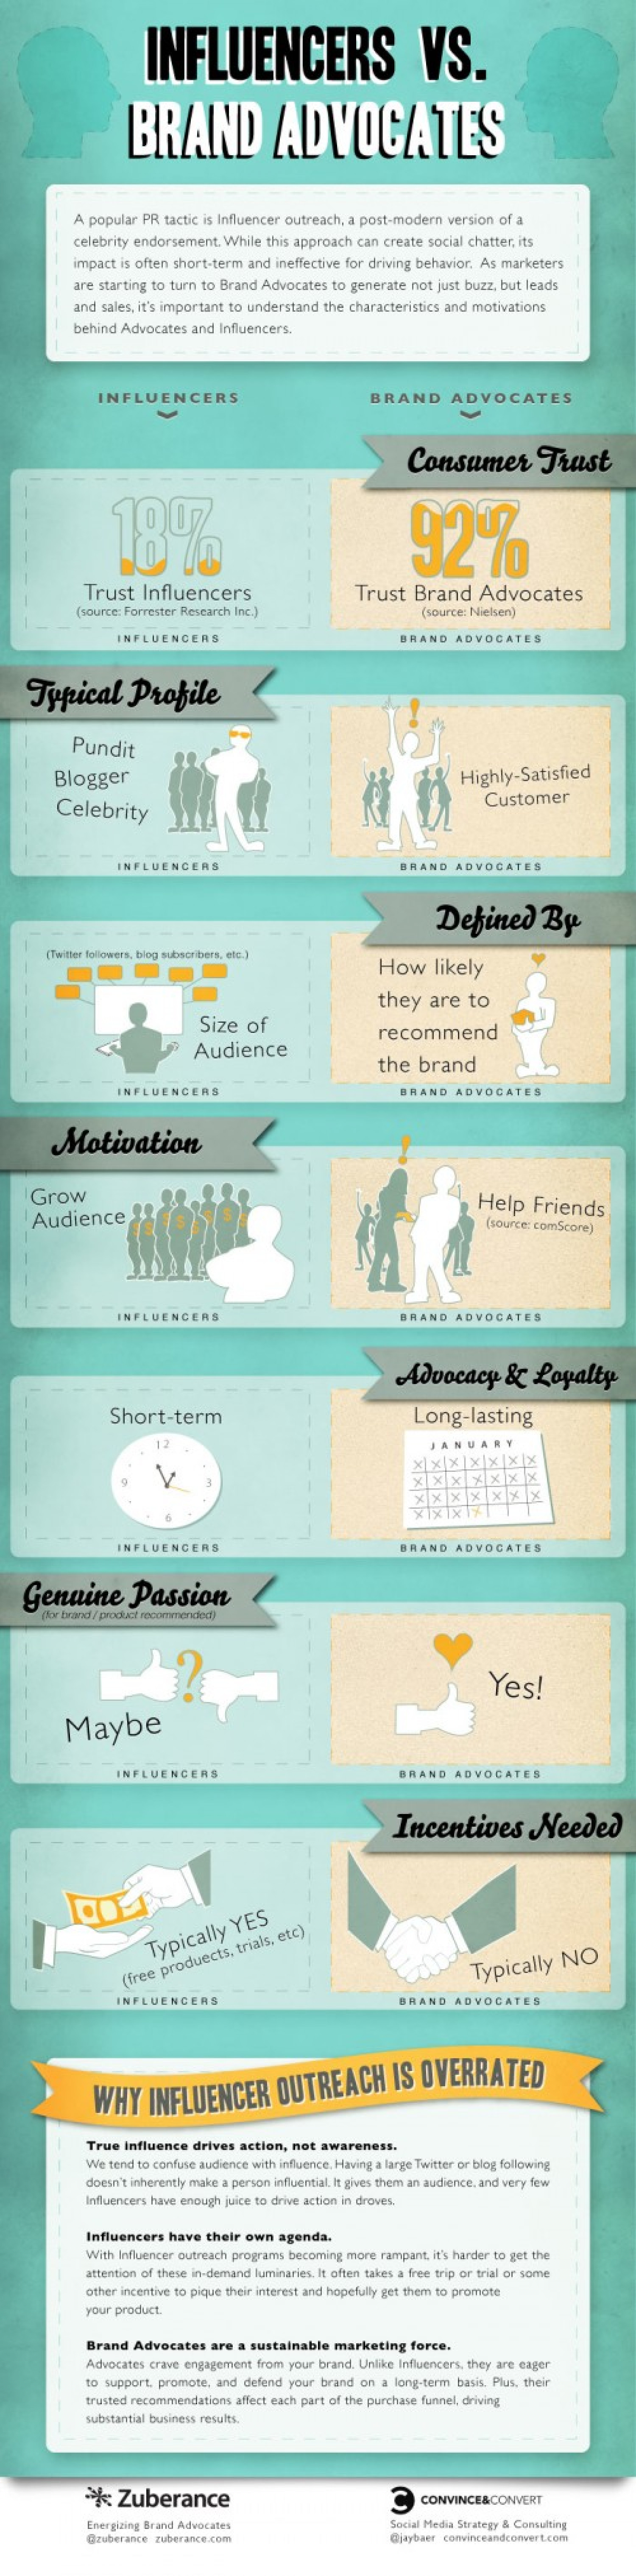 Influencers vs. Brand Advocates Infographic